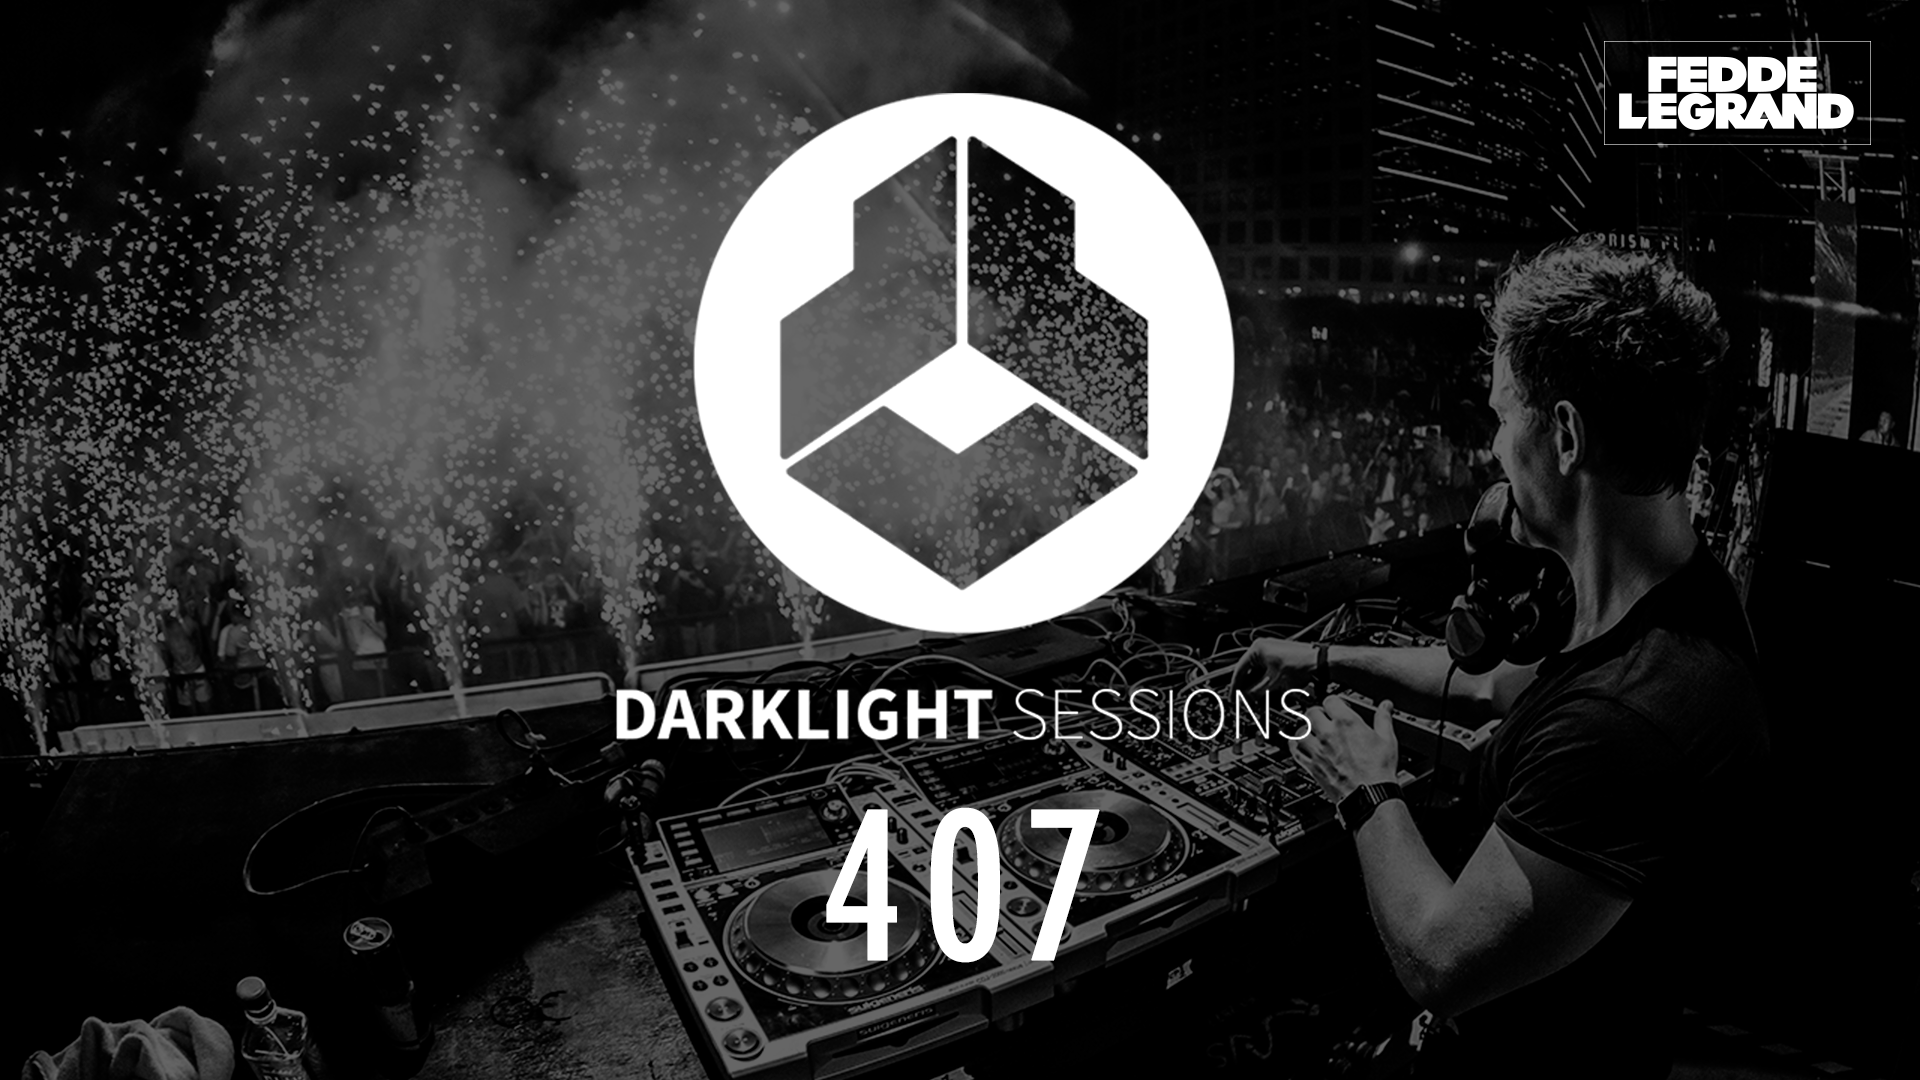 Darklight Sessions 407